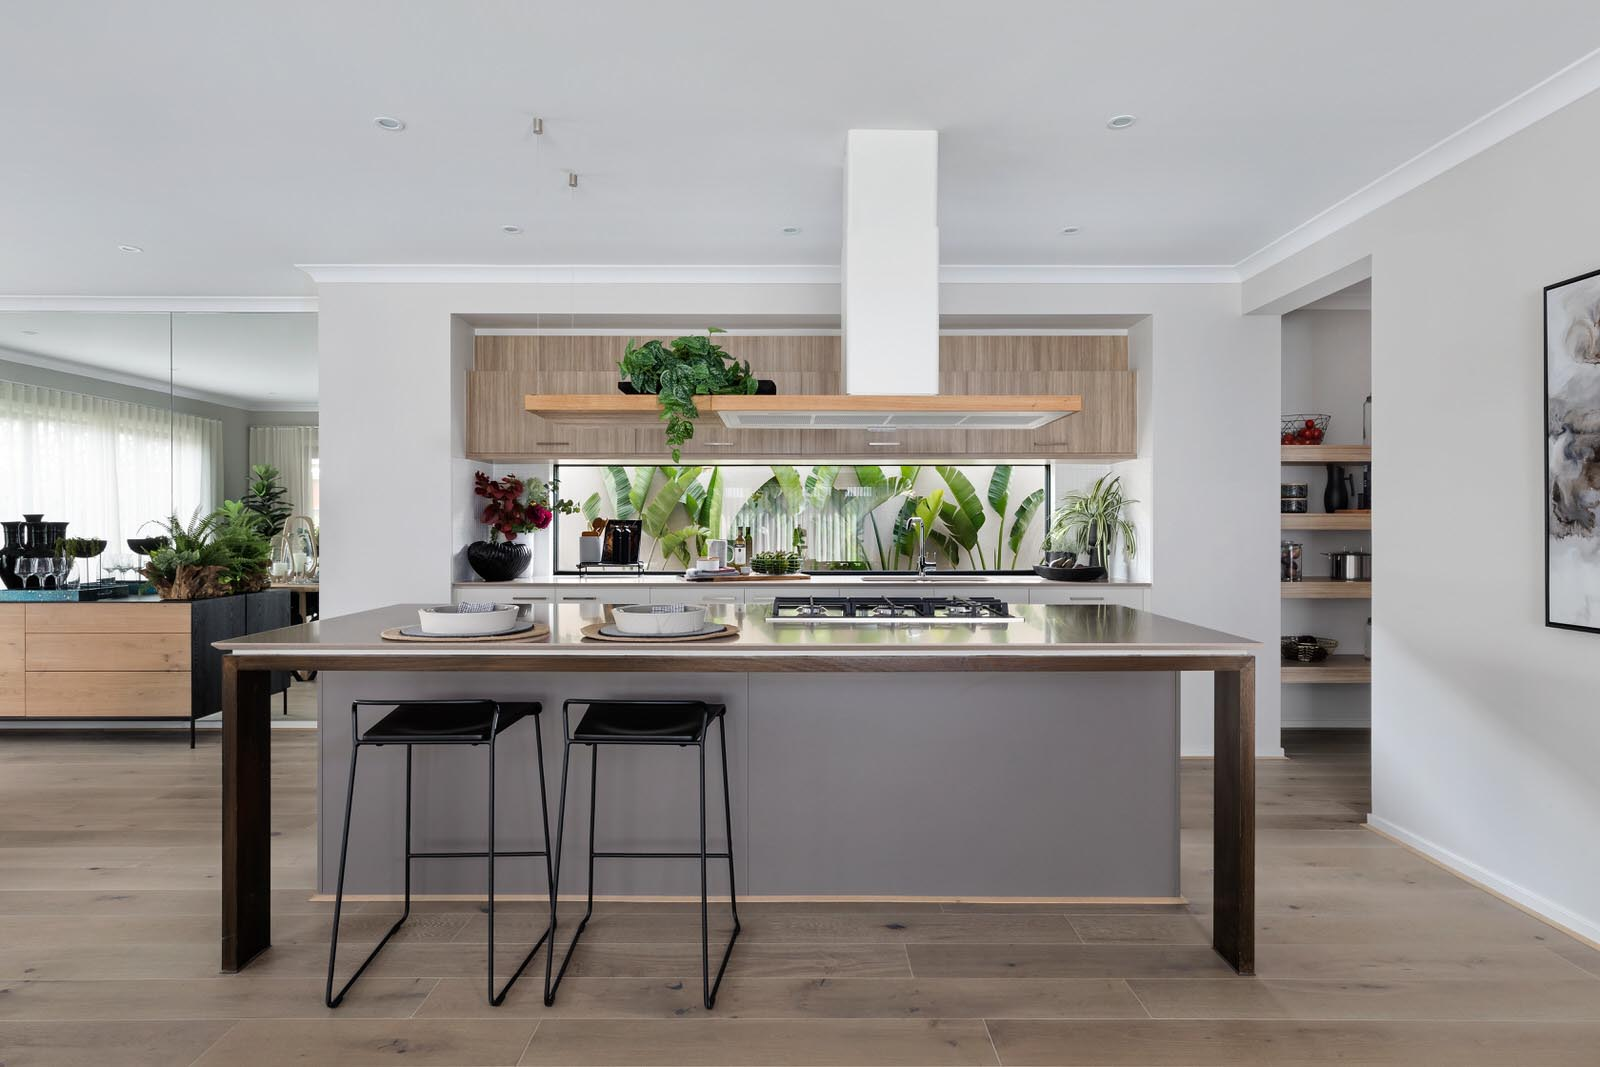 metricon kitchen with cooktop in island and light timber upper cabinets